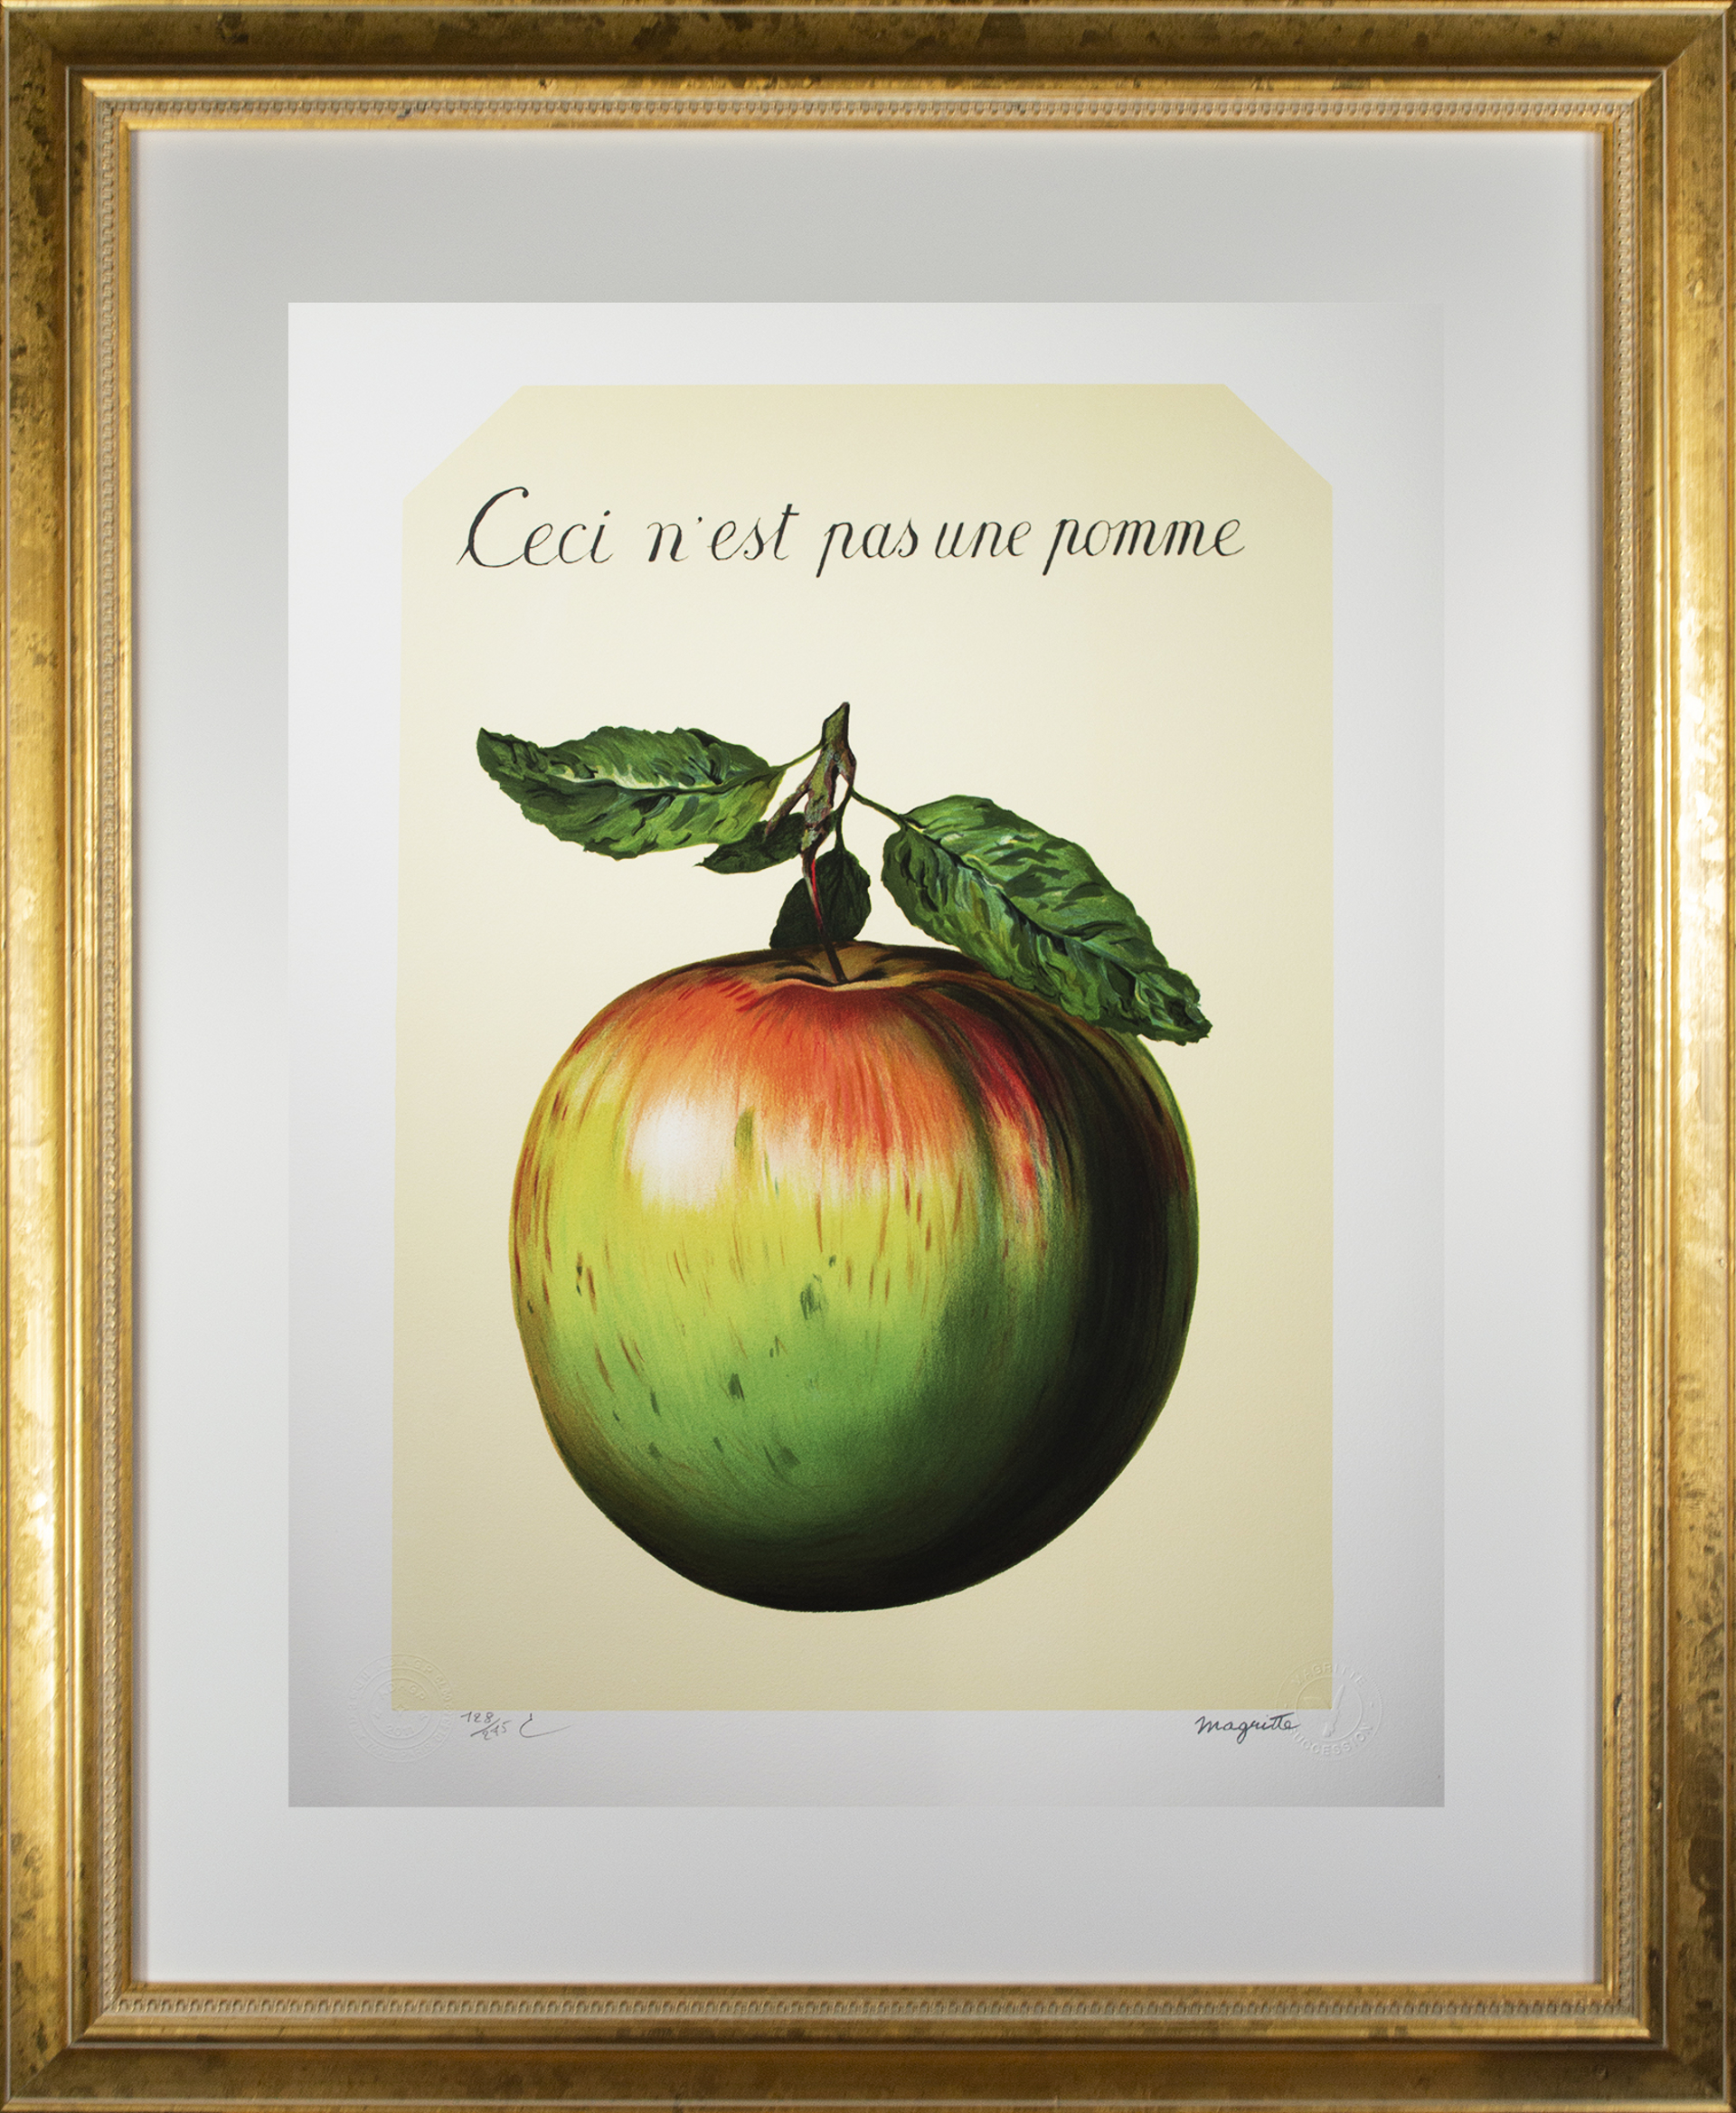 Ceci n'est pas une pomme (This is Not an Apple) by Rene Magritte